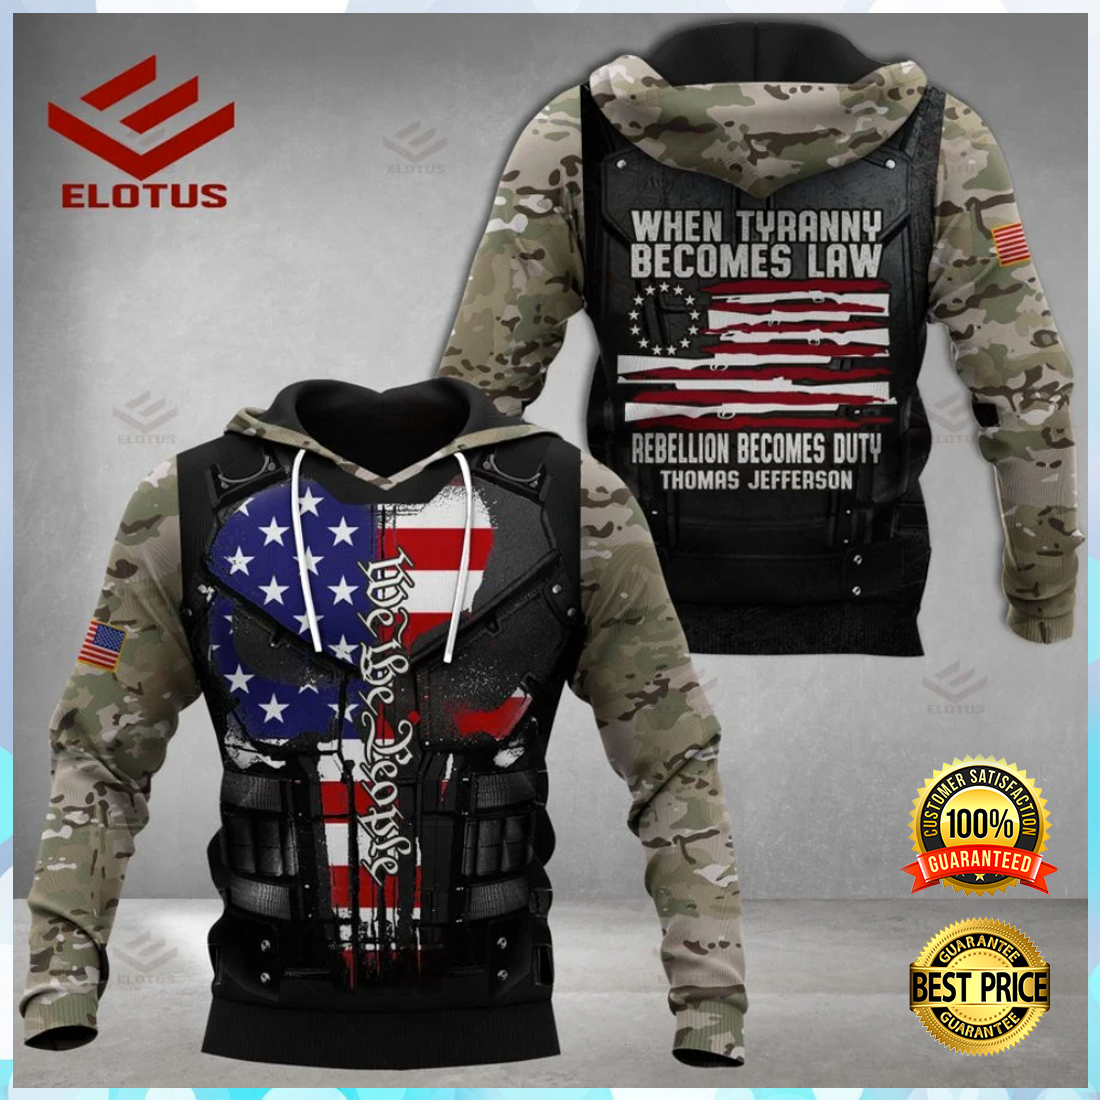 PERSONALIZED WHEN TYRANNY BECOMES LAW REBELLION BECOMES DUTY ALL OVER PRINTED 3D HOODIE 6